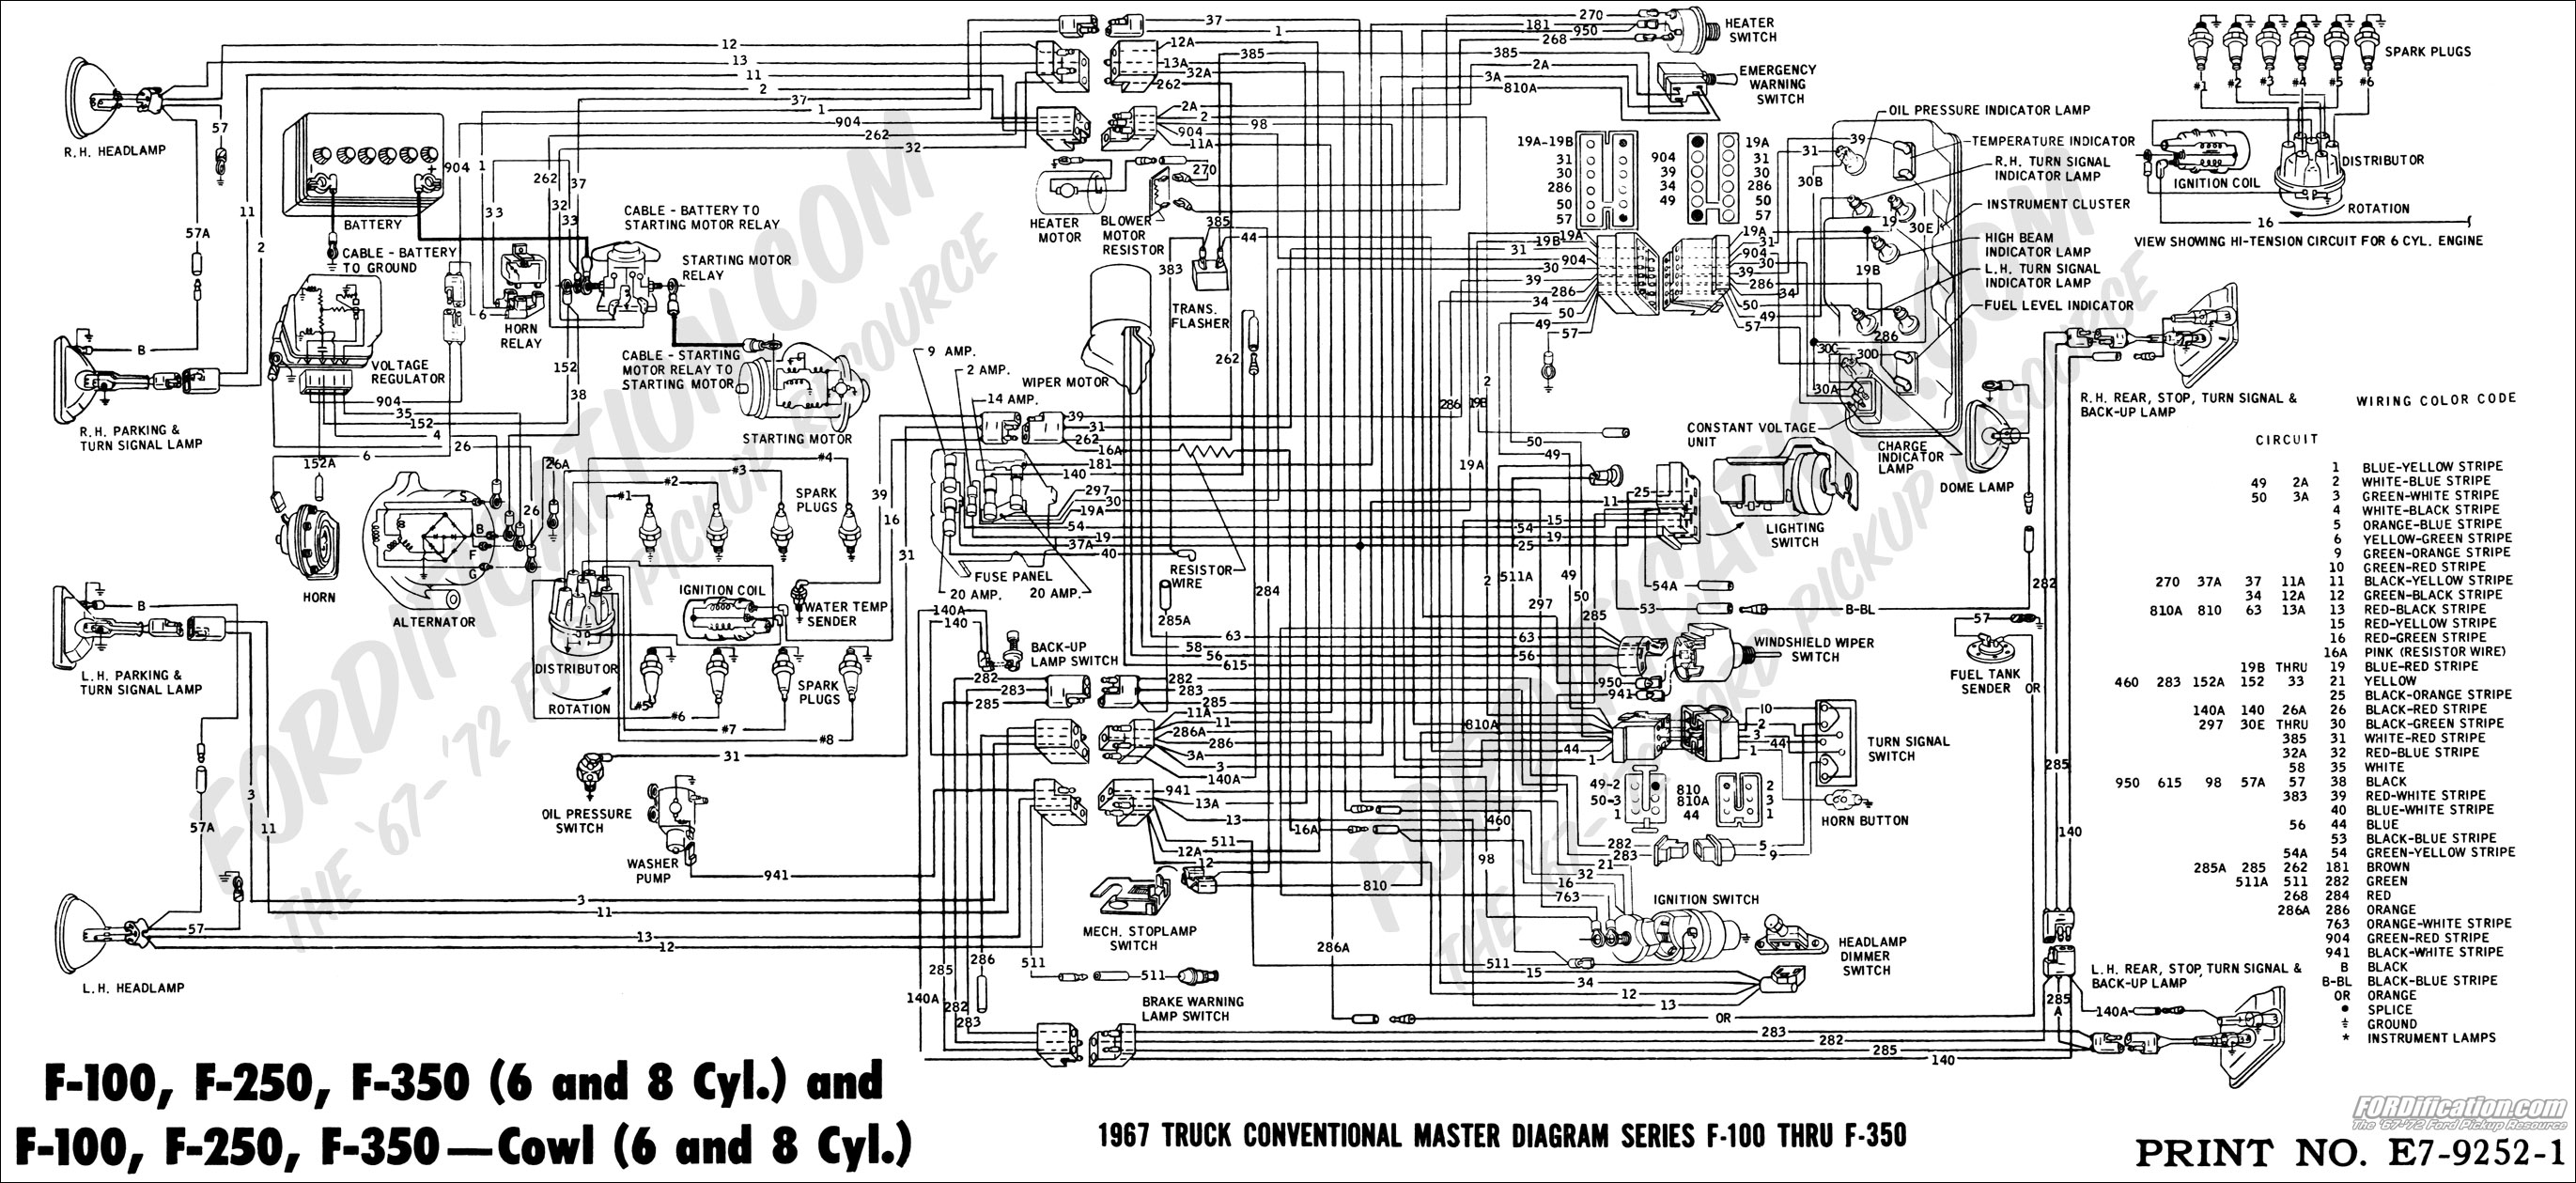 ford e 450 fuse diagram for 2000 ford truck technical drawings and schematics section h #12